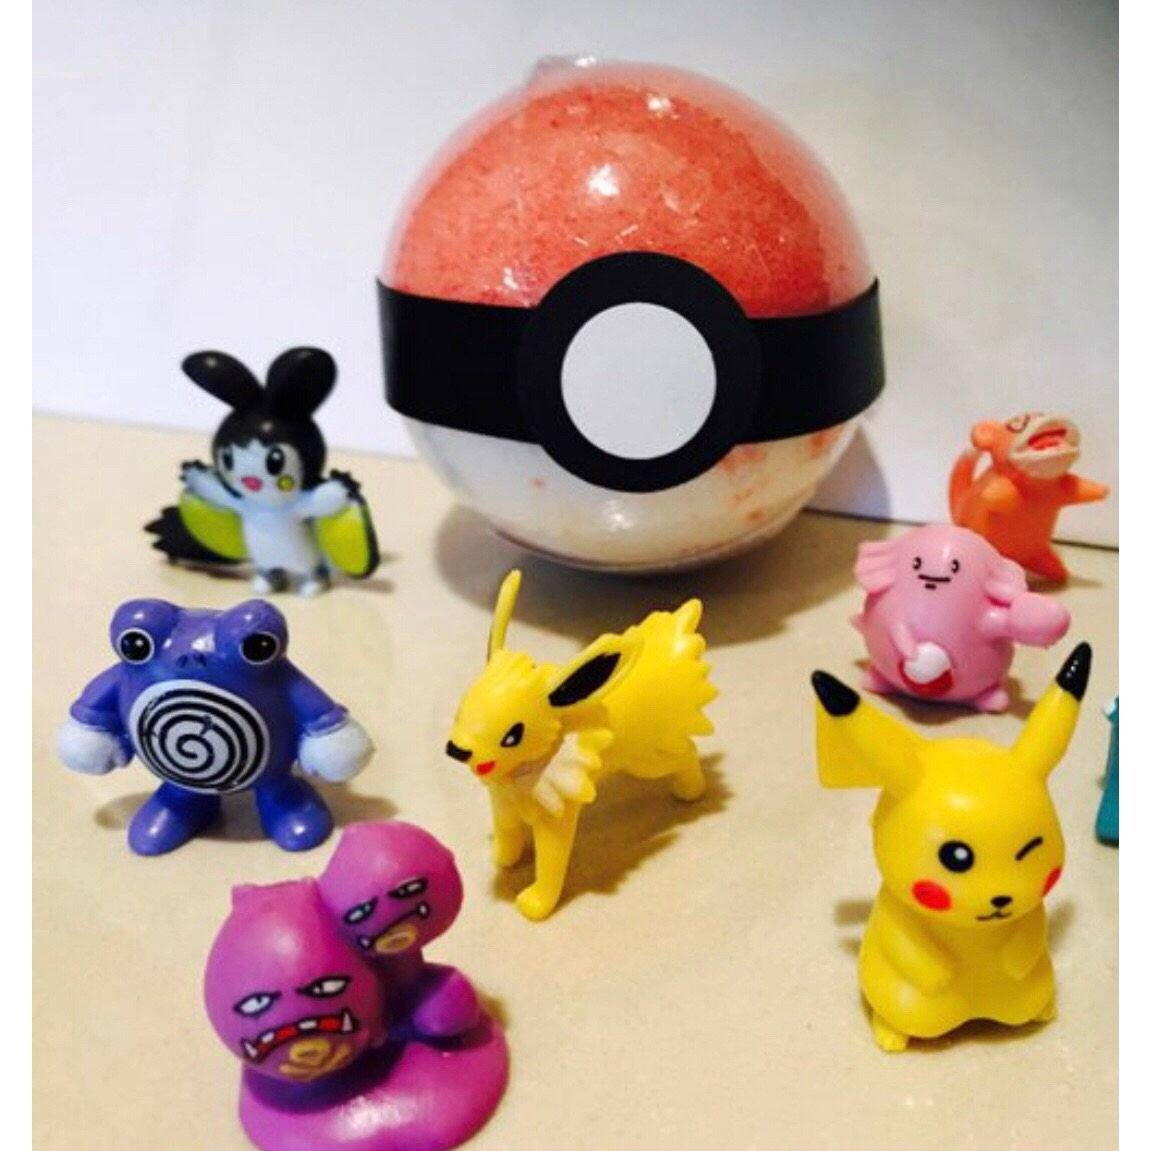 BATH FIZZY - SMALL SURPRISE TOY POKEBALL, BATH, Crafted Bath - Bon + Co. Party Studio